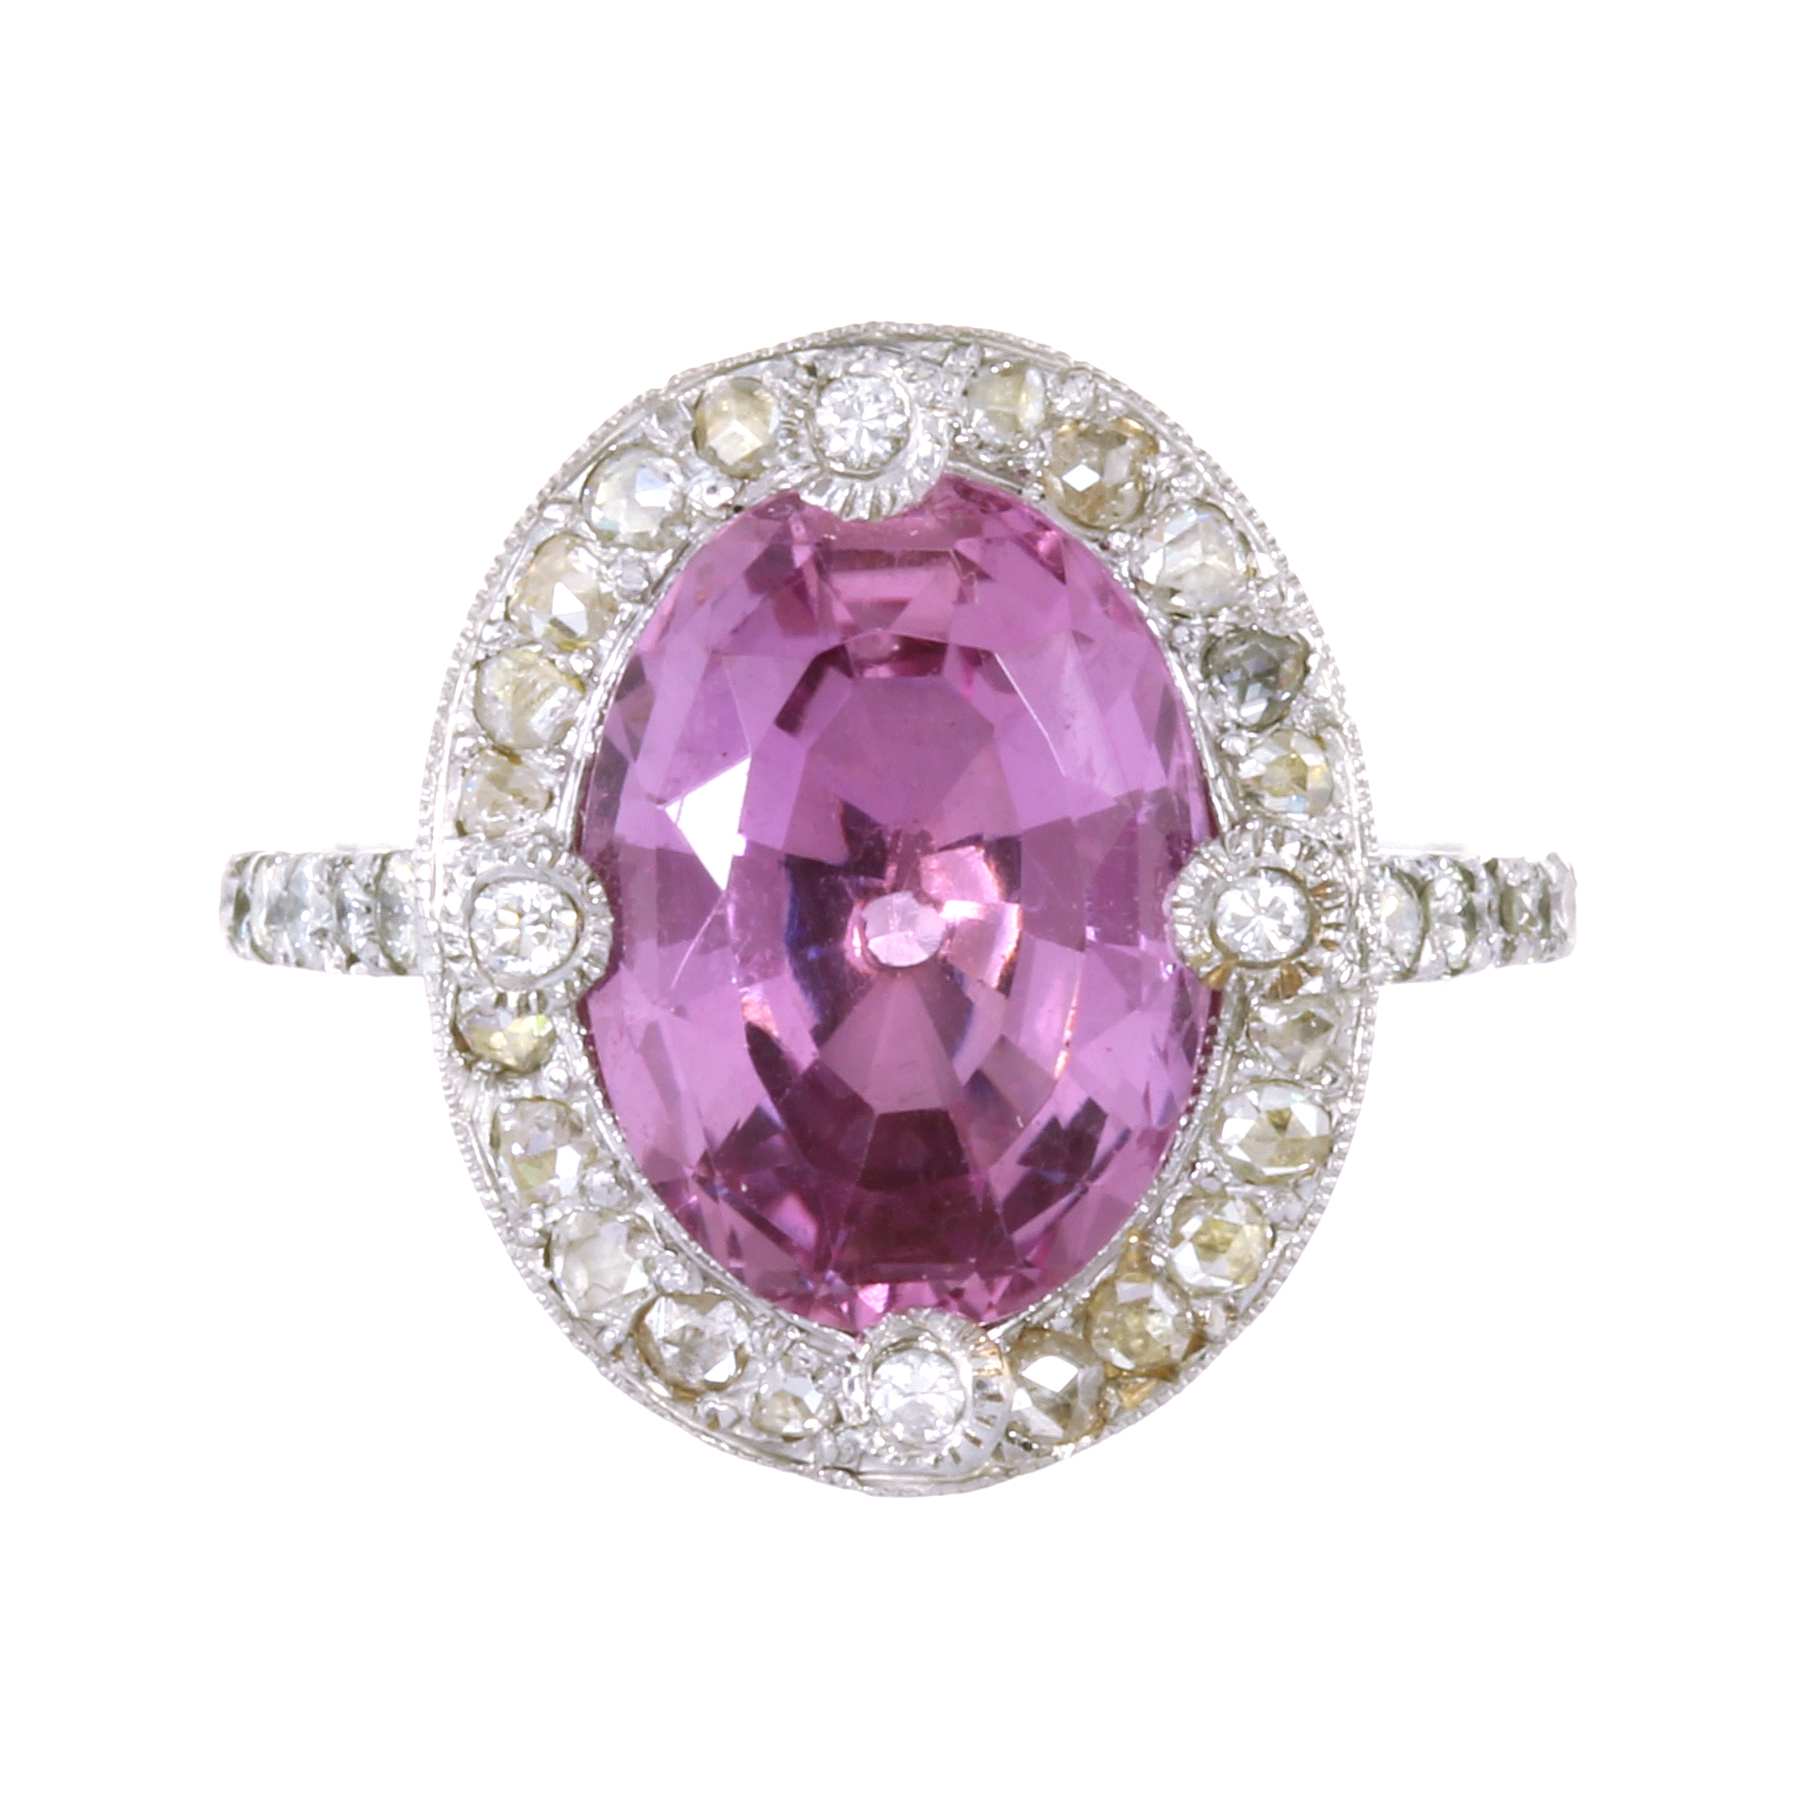 A PINK TOPAZ AND DIAMOND RING in platinum set with a central oval cut pink topaz of 6.25 carats